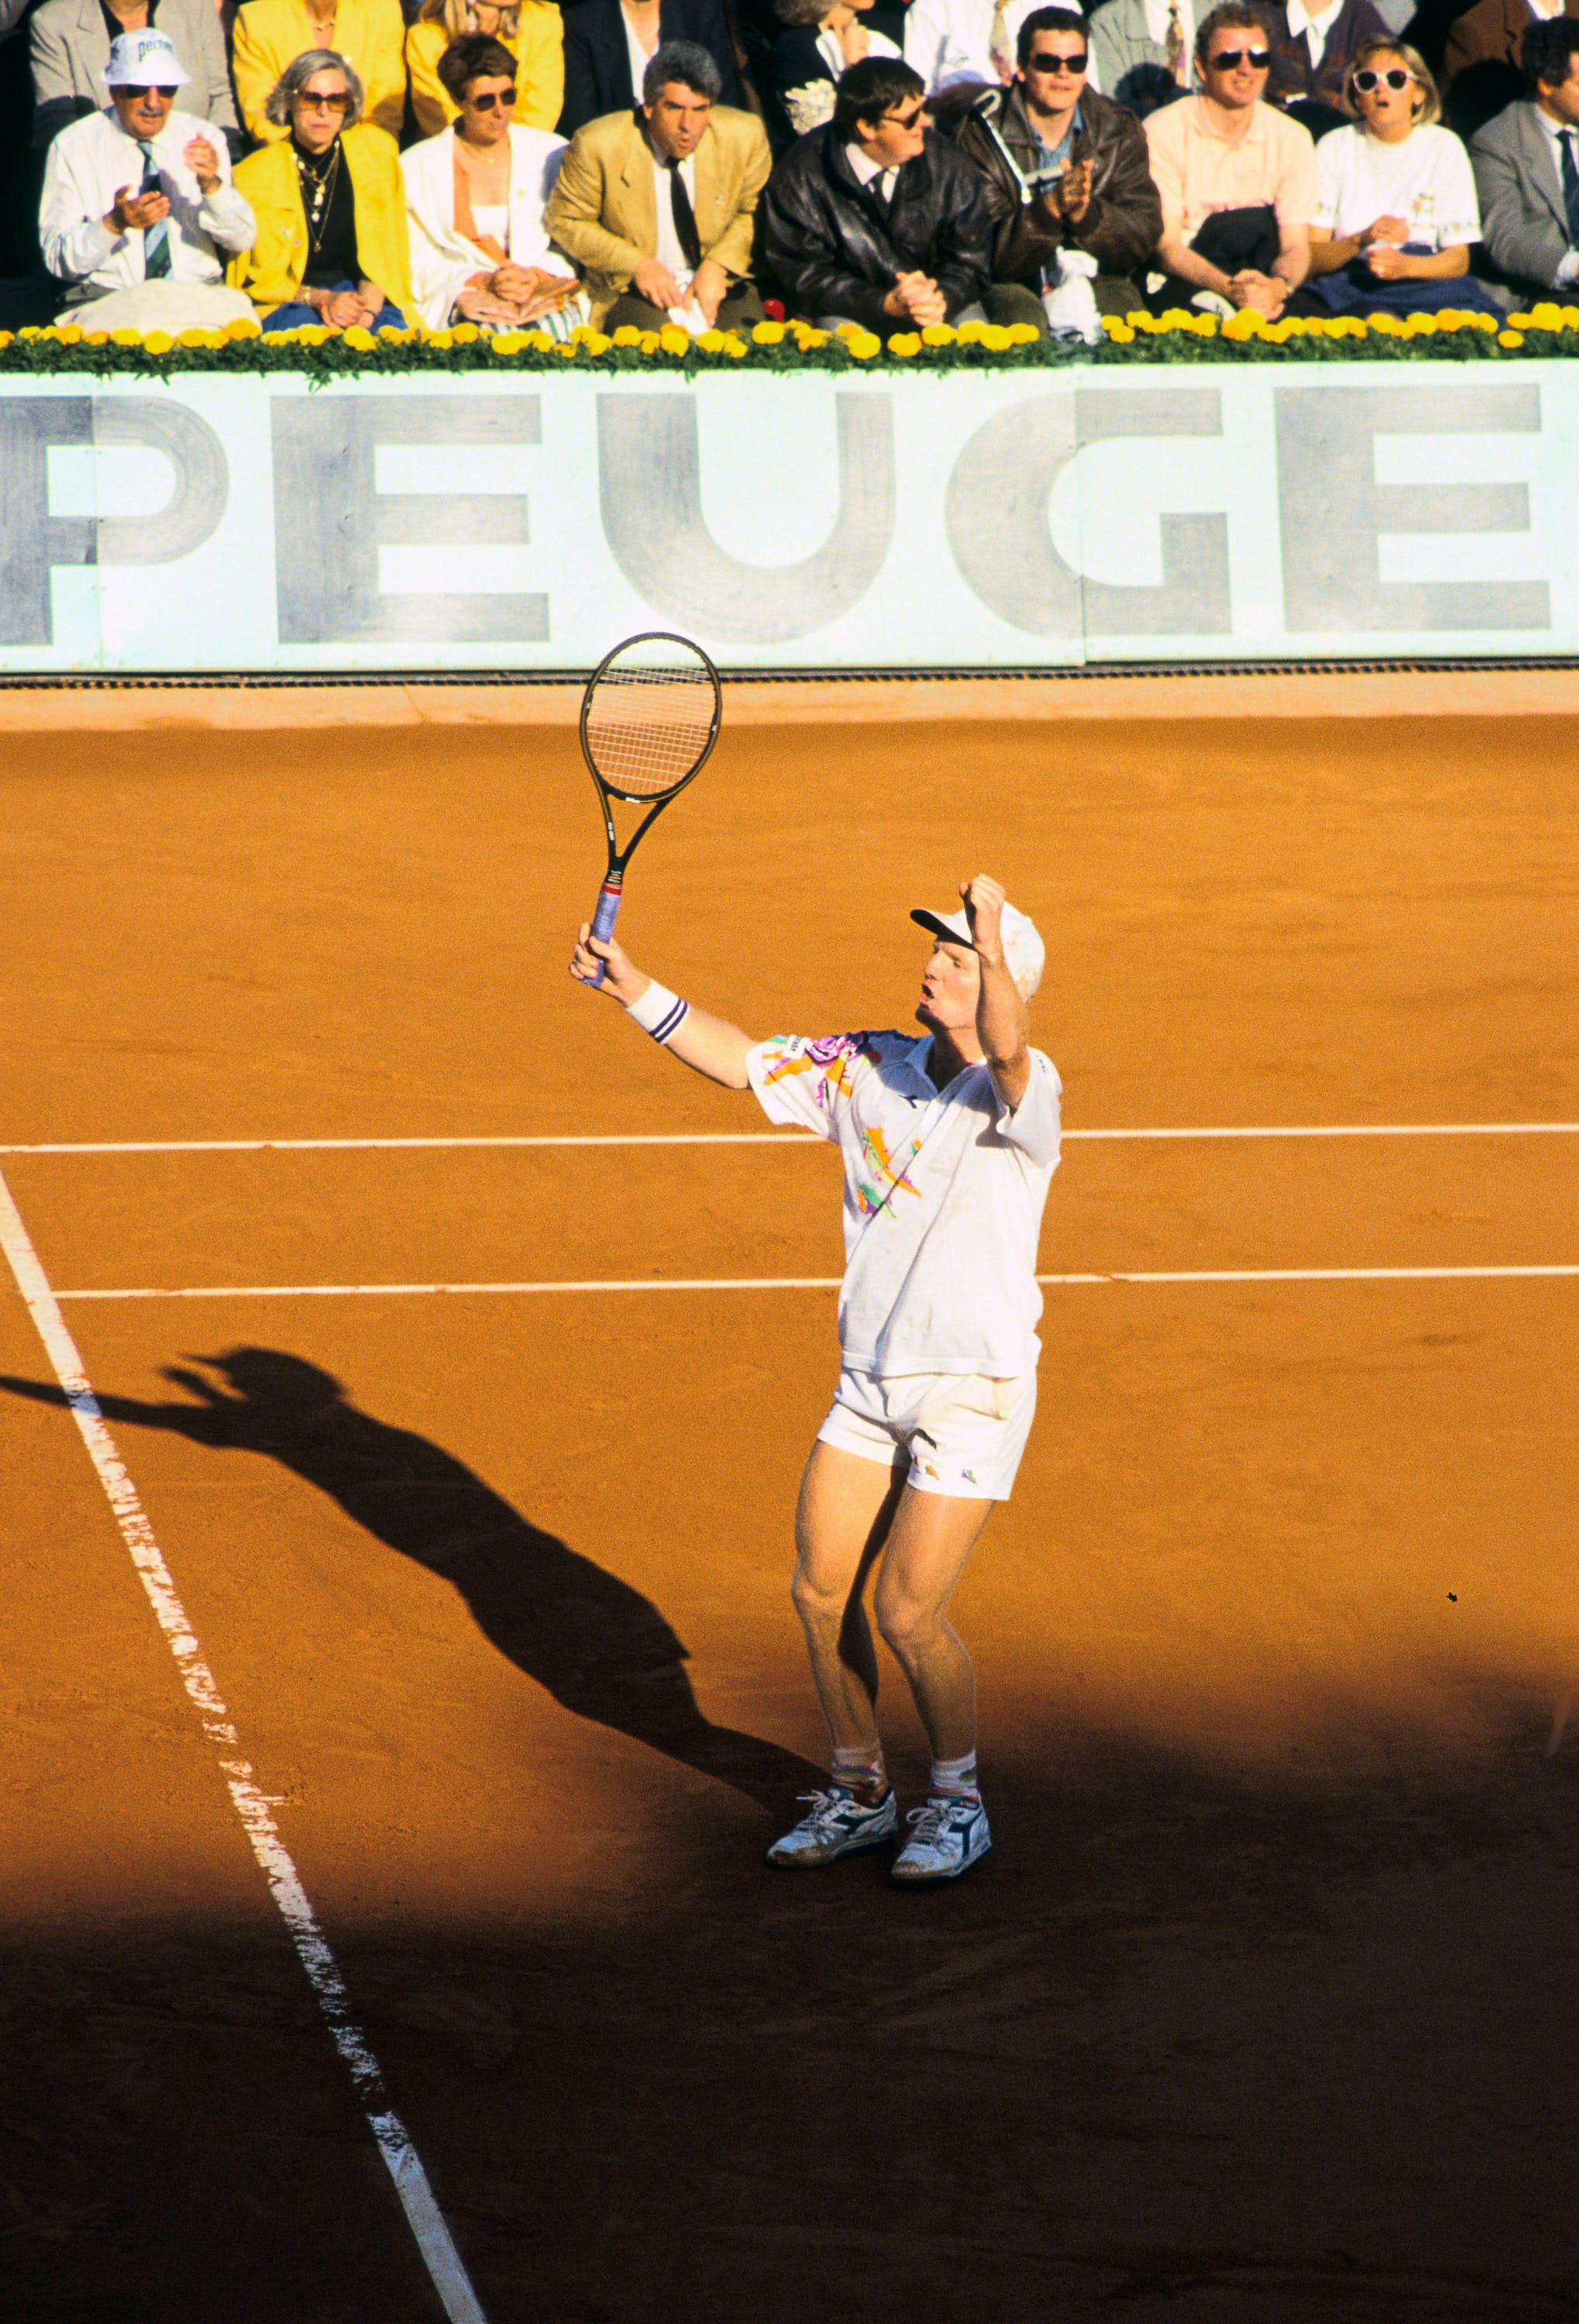 Jim Courier during the final against Andre Agassi at Roland-Garros 1991